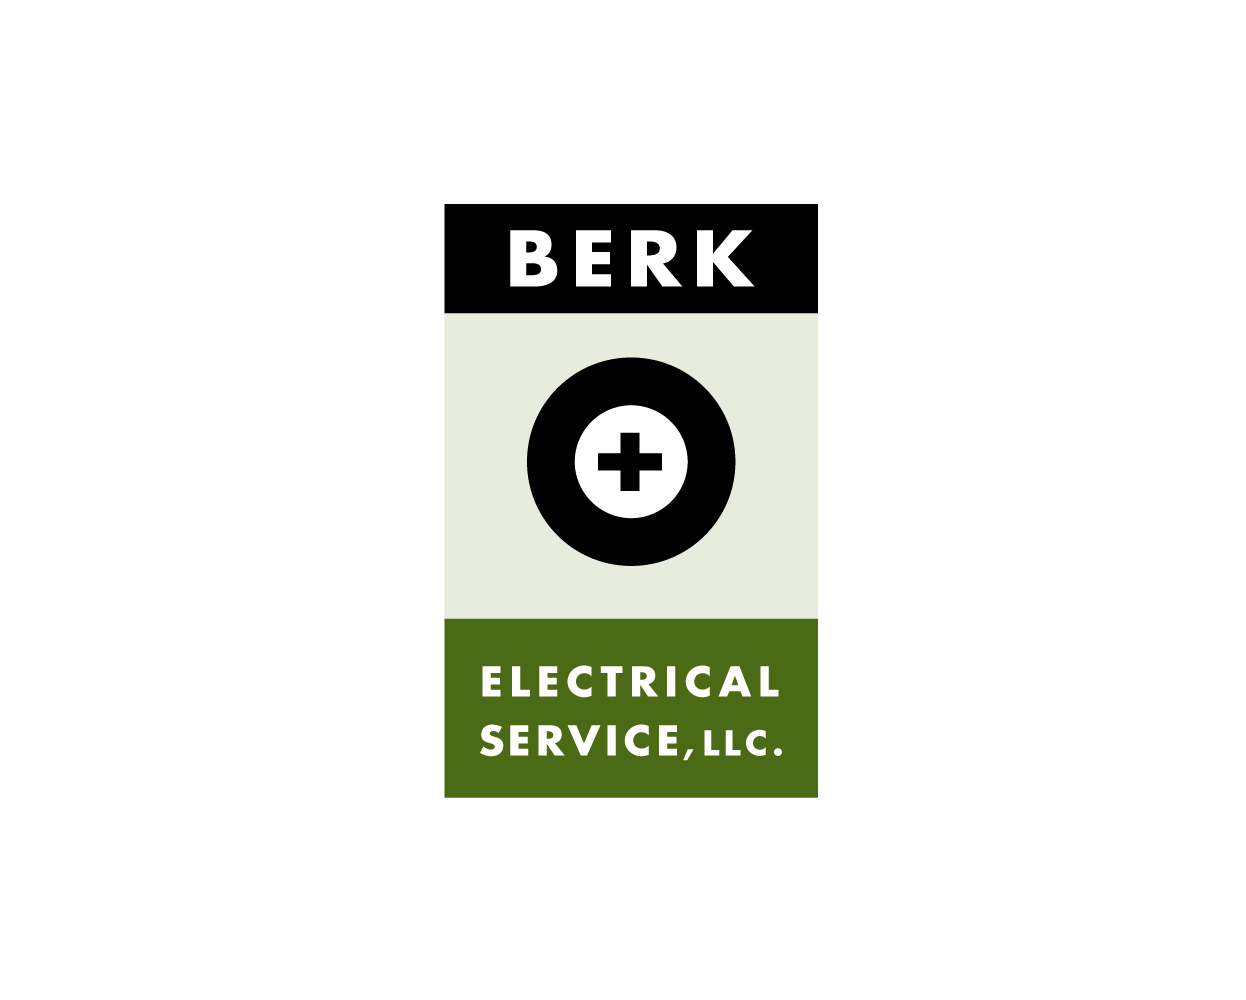 Berk Electrical Services | Identity